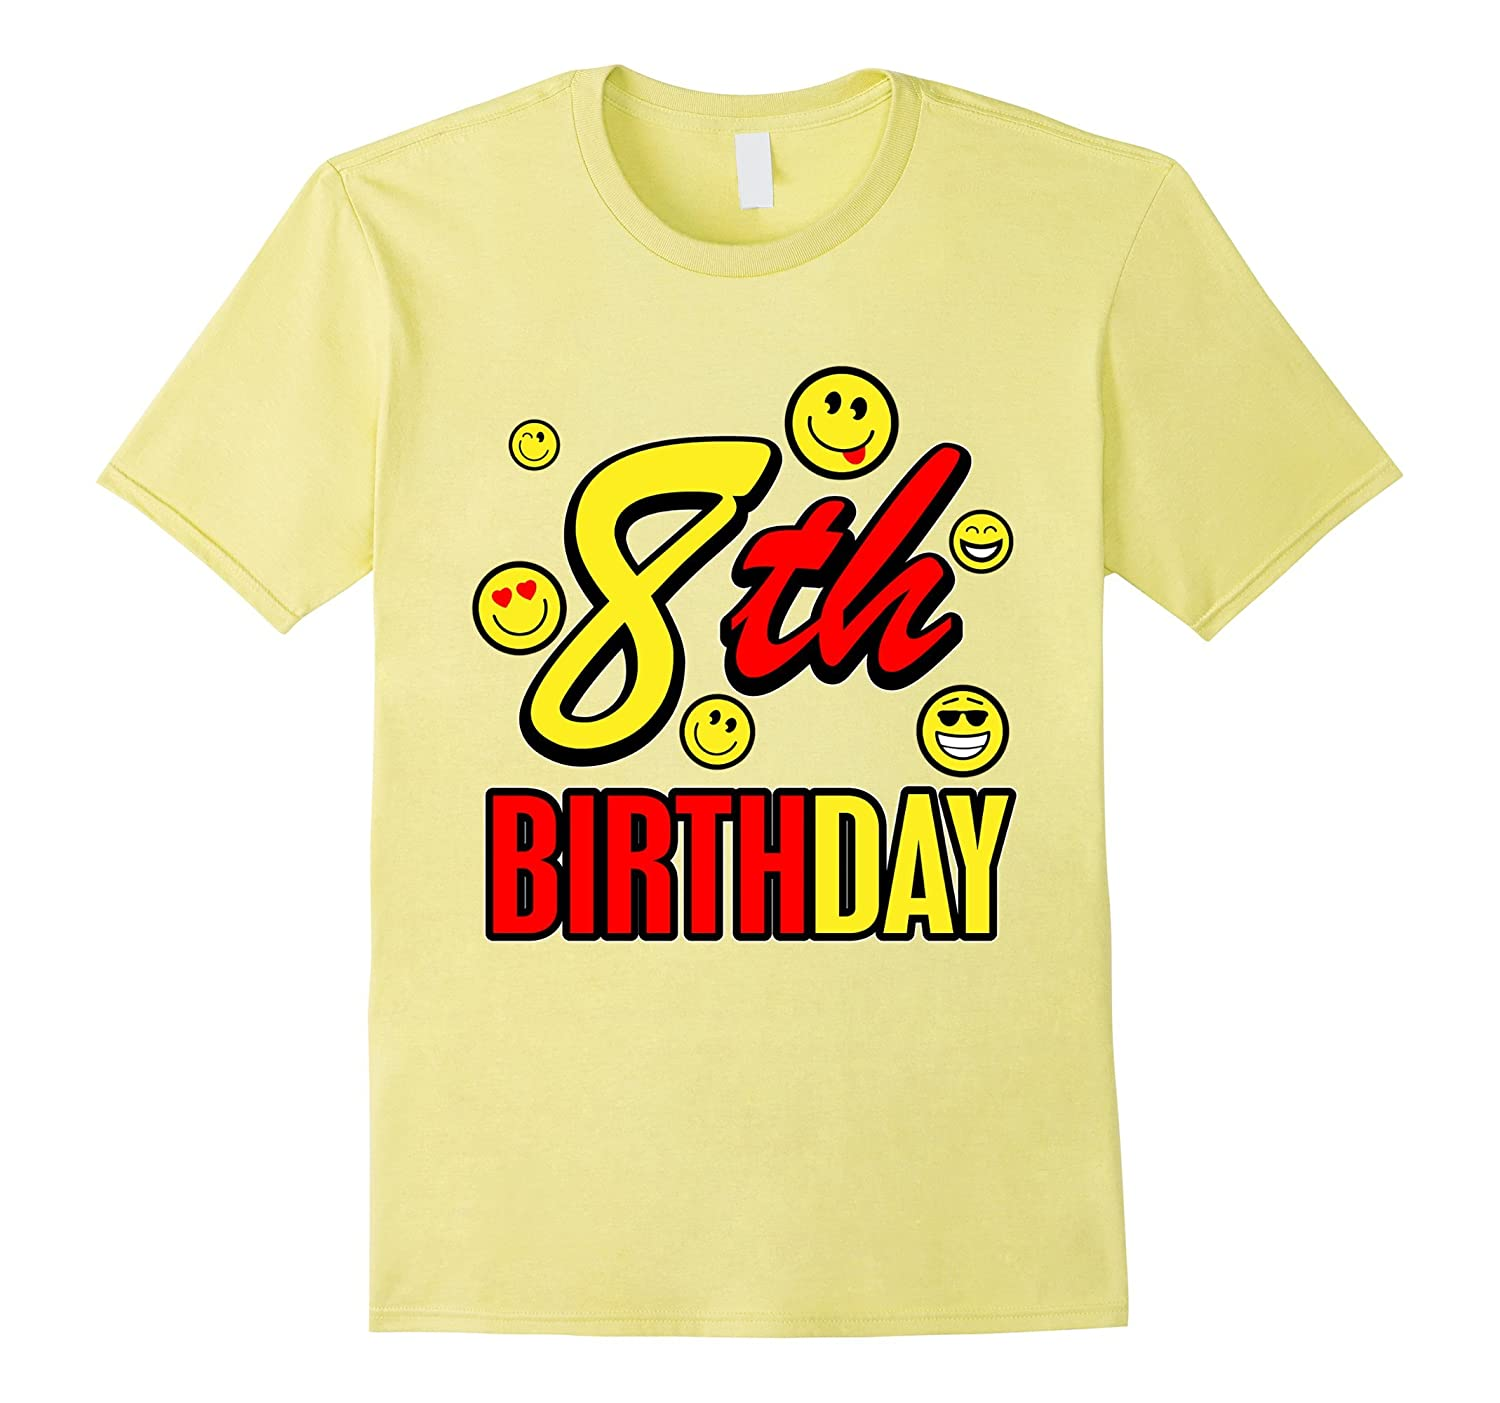 8 Year Old Birthday With Emojis T Shirt